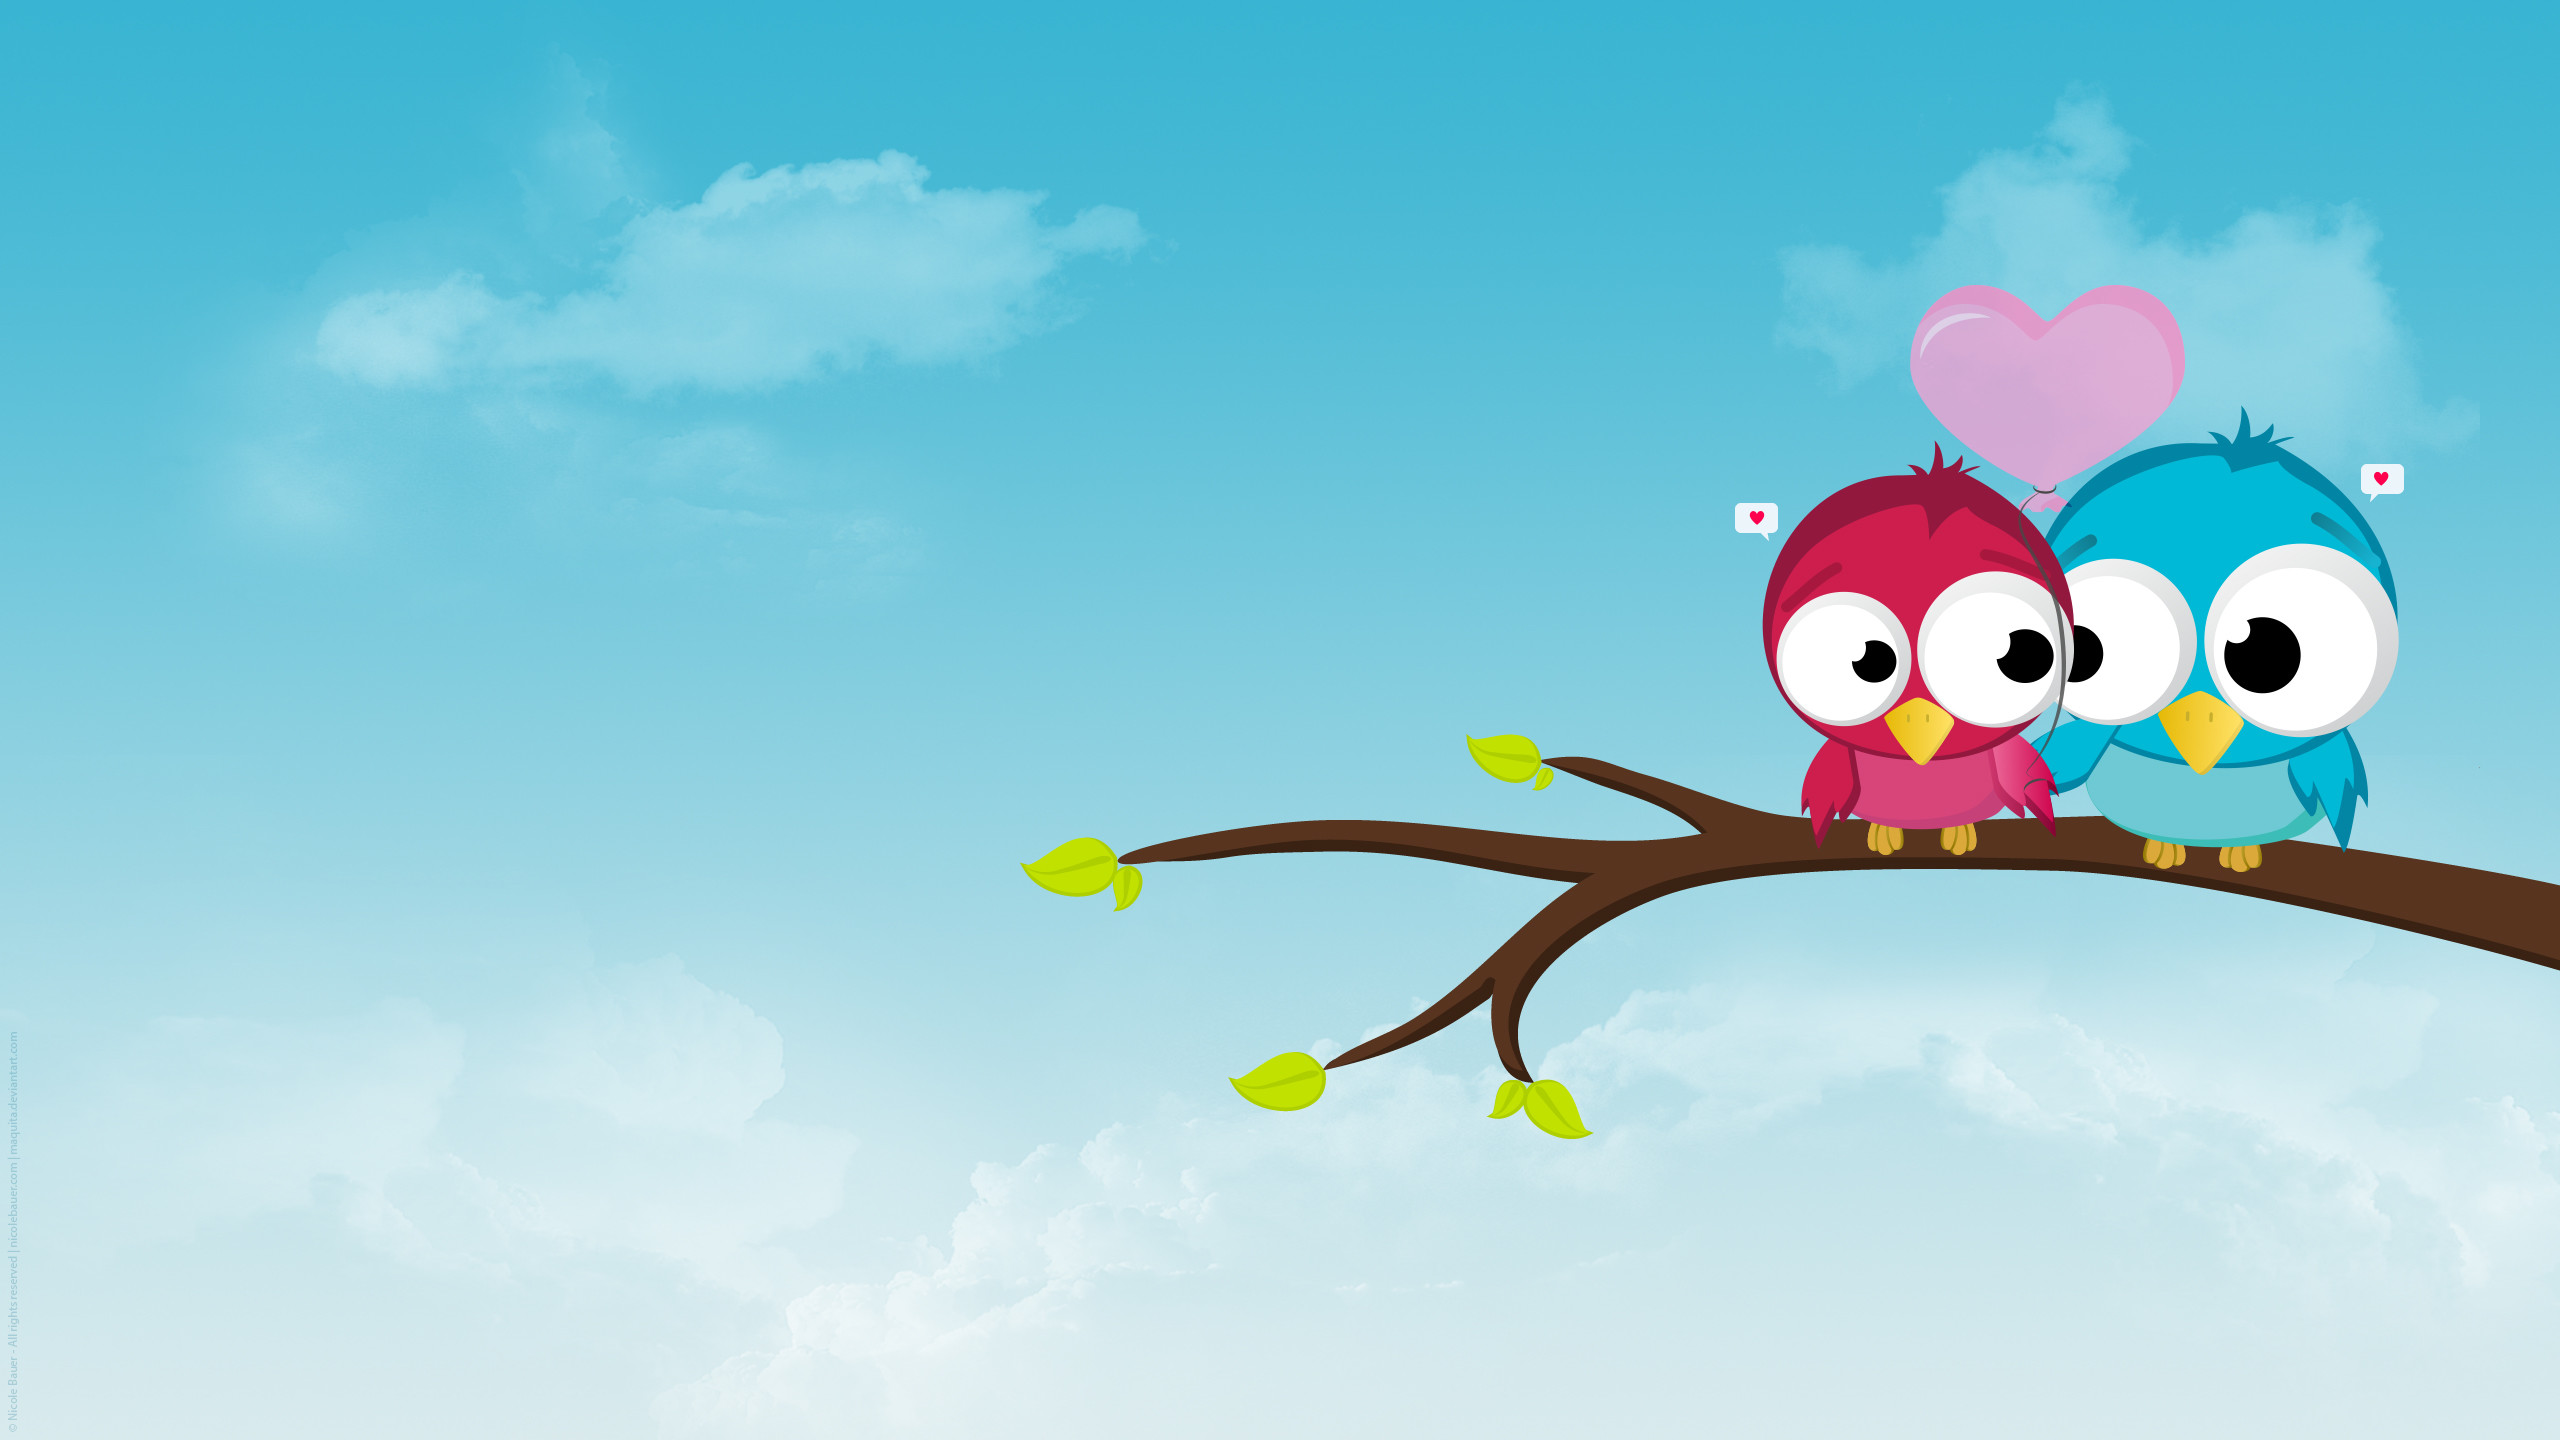 Cute Love Backgrounds – Wallpaper, High Definition, High Quality .